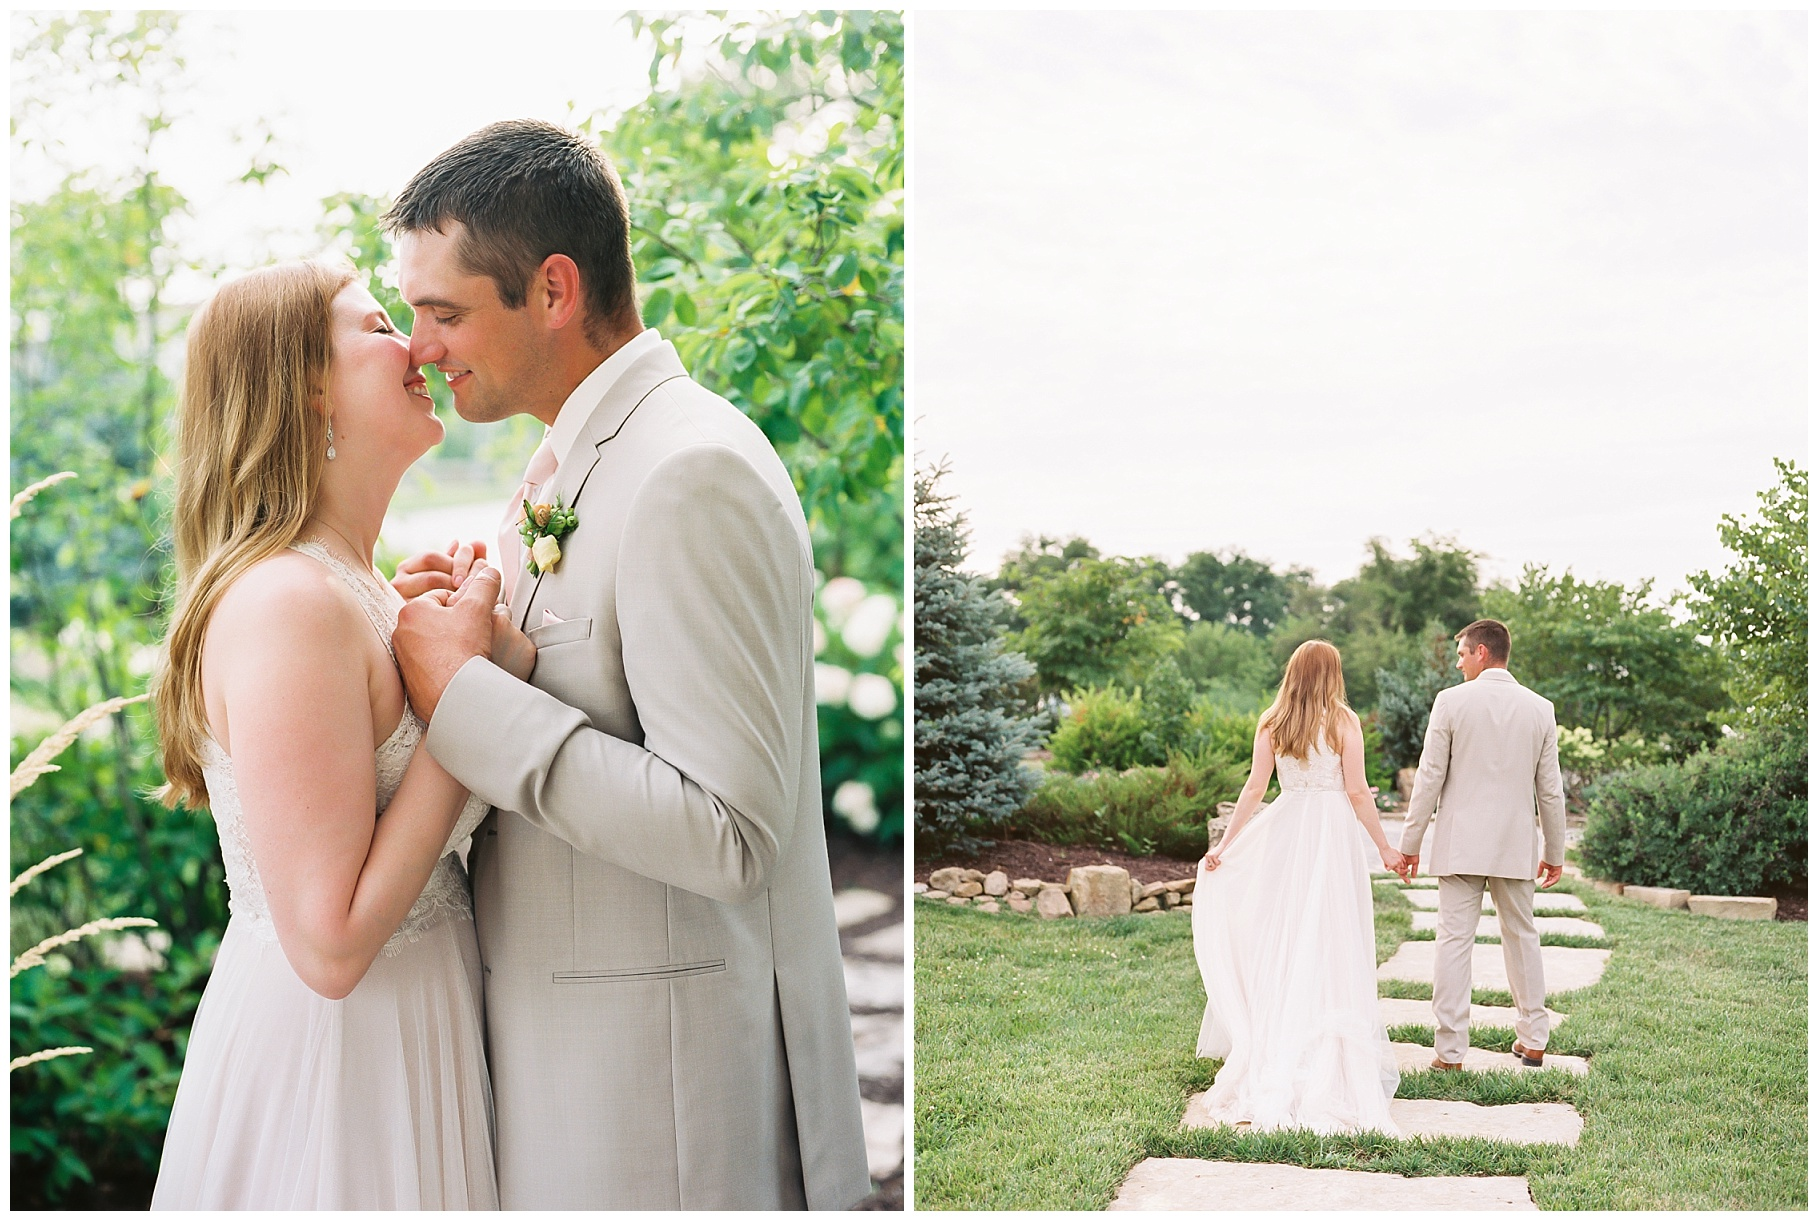 Late Summer Wedding With Pastel Toned Soiree at Blue Bell Farm by Kelsi Kliethermes Photography Best Columbia Missouri Wedding Photographer_0081.jpg